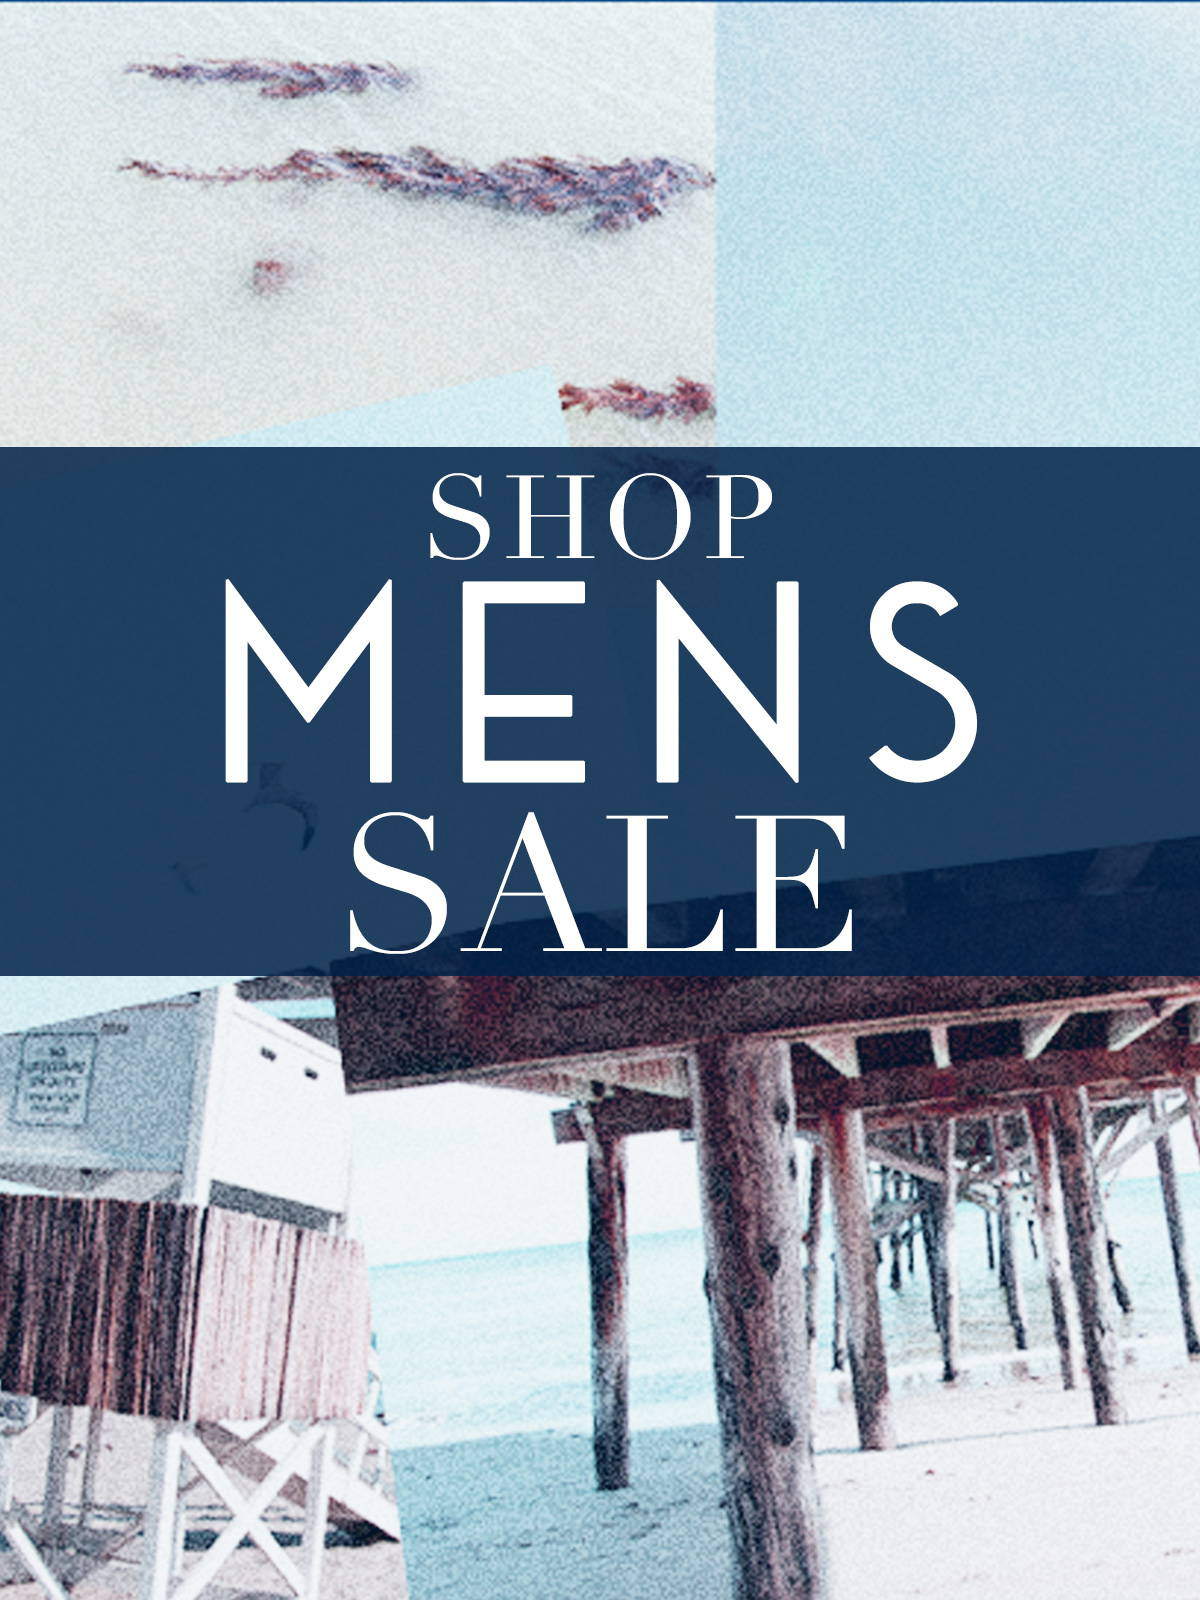 Shop the Mens 50% Off January Sale